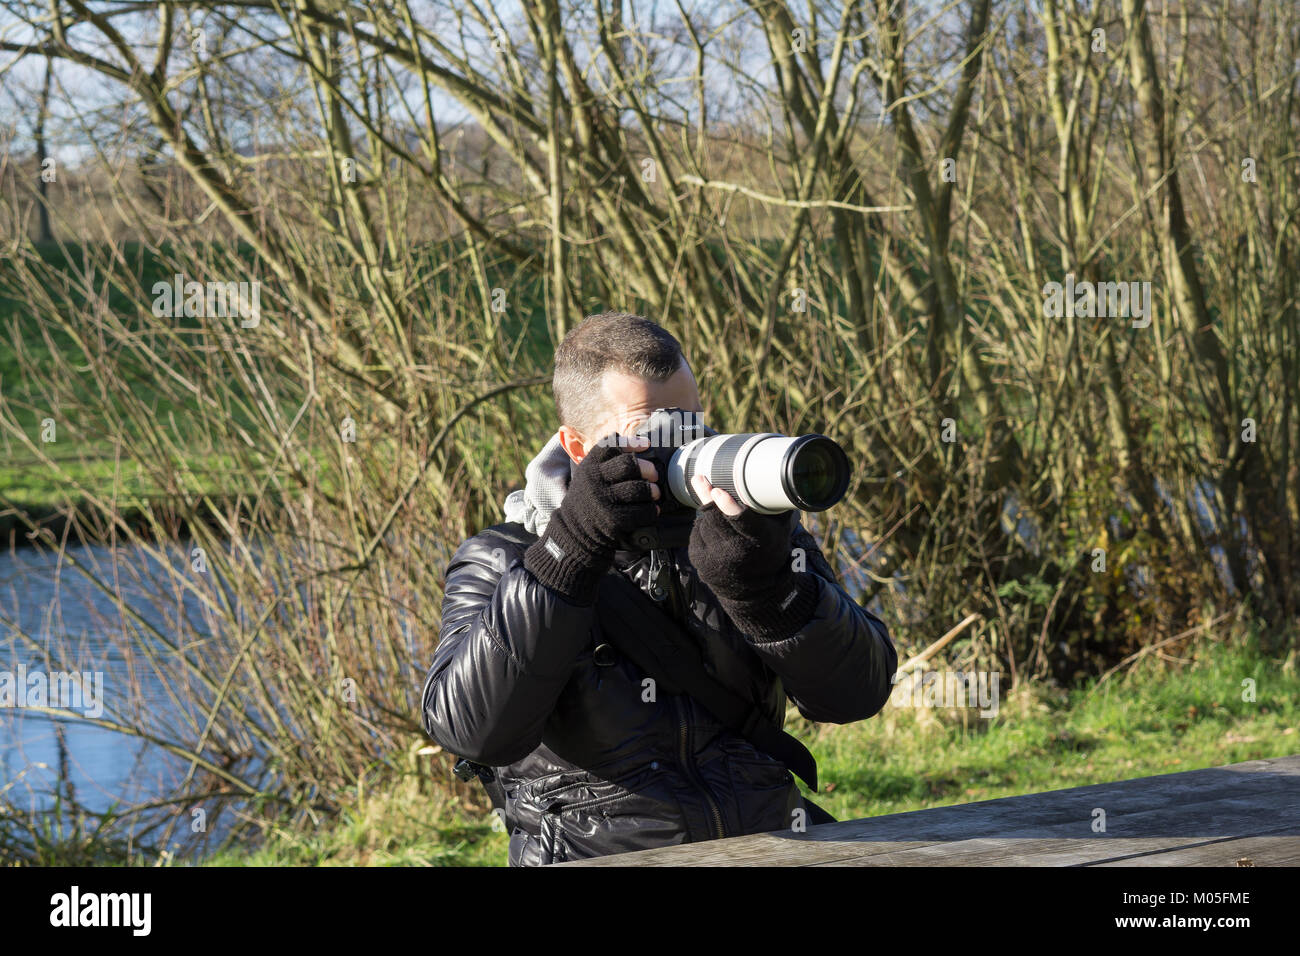 Professional male nature photographer taking photos on cold winter morning. Shooting outdoors, Canon equipment ready: - Stock Image